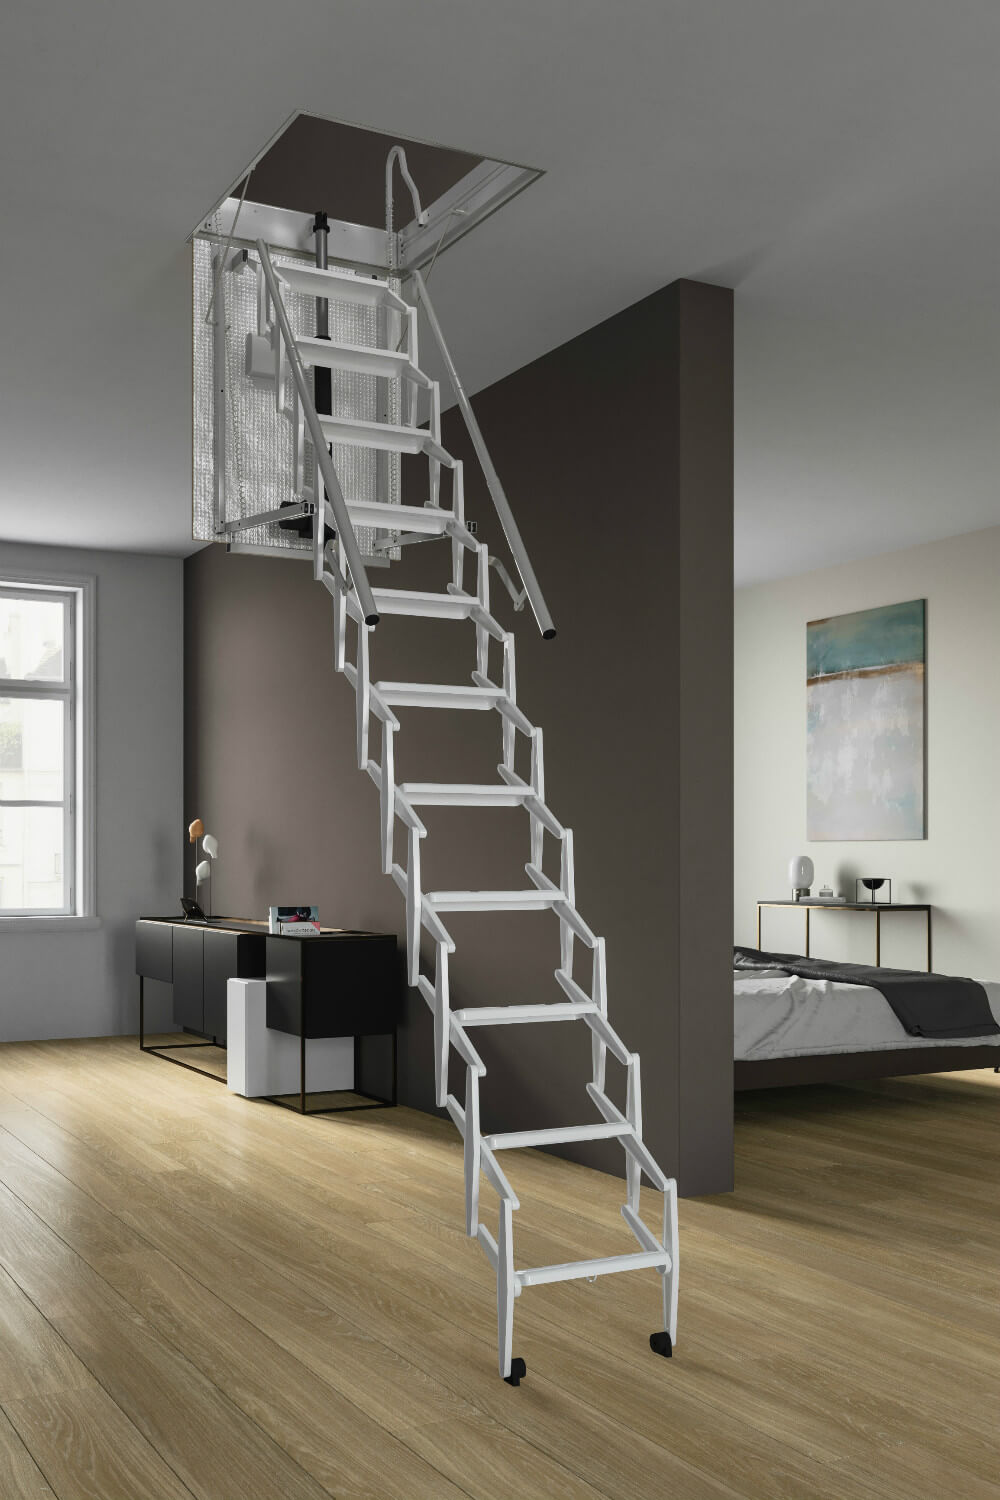 Escalmatic loft ladder from Premier Loft Ladder. Style, safety and convenience.